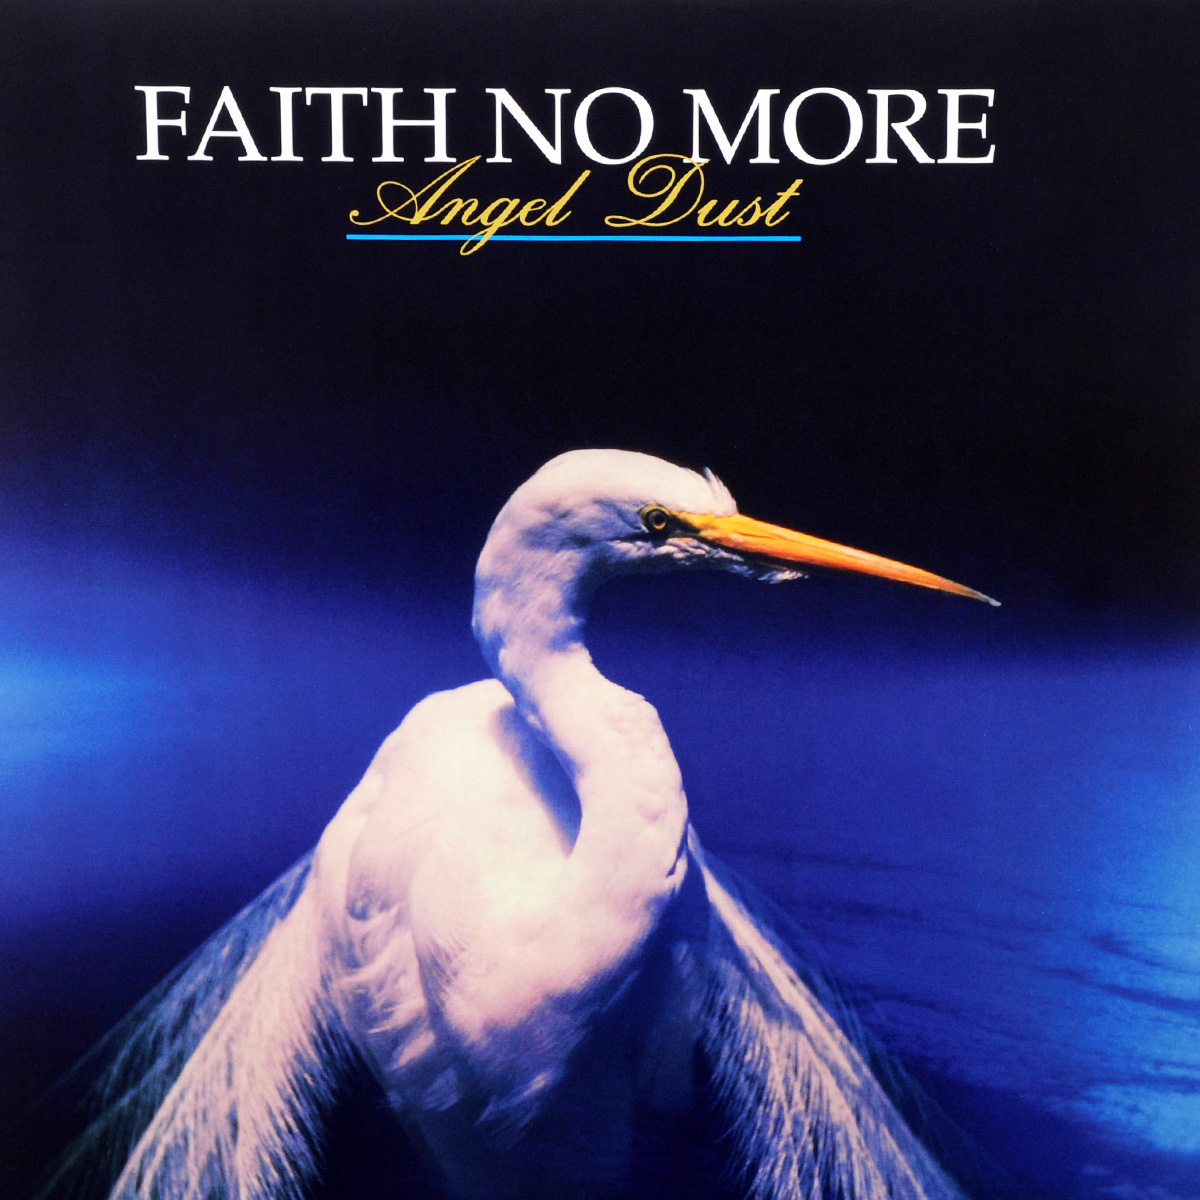 Faith No More Faith No More. Angel Dust (2 LP) faith no more angel dusto 2cd cd